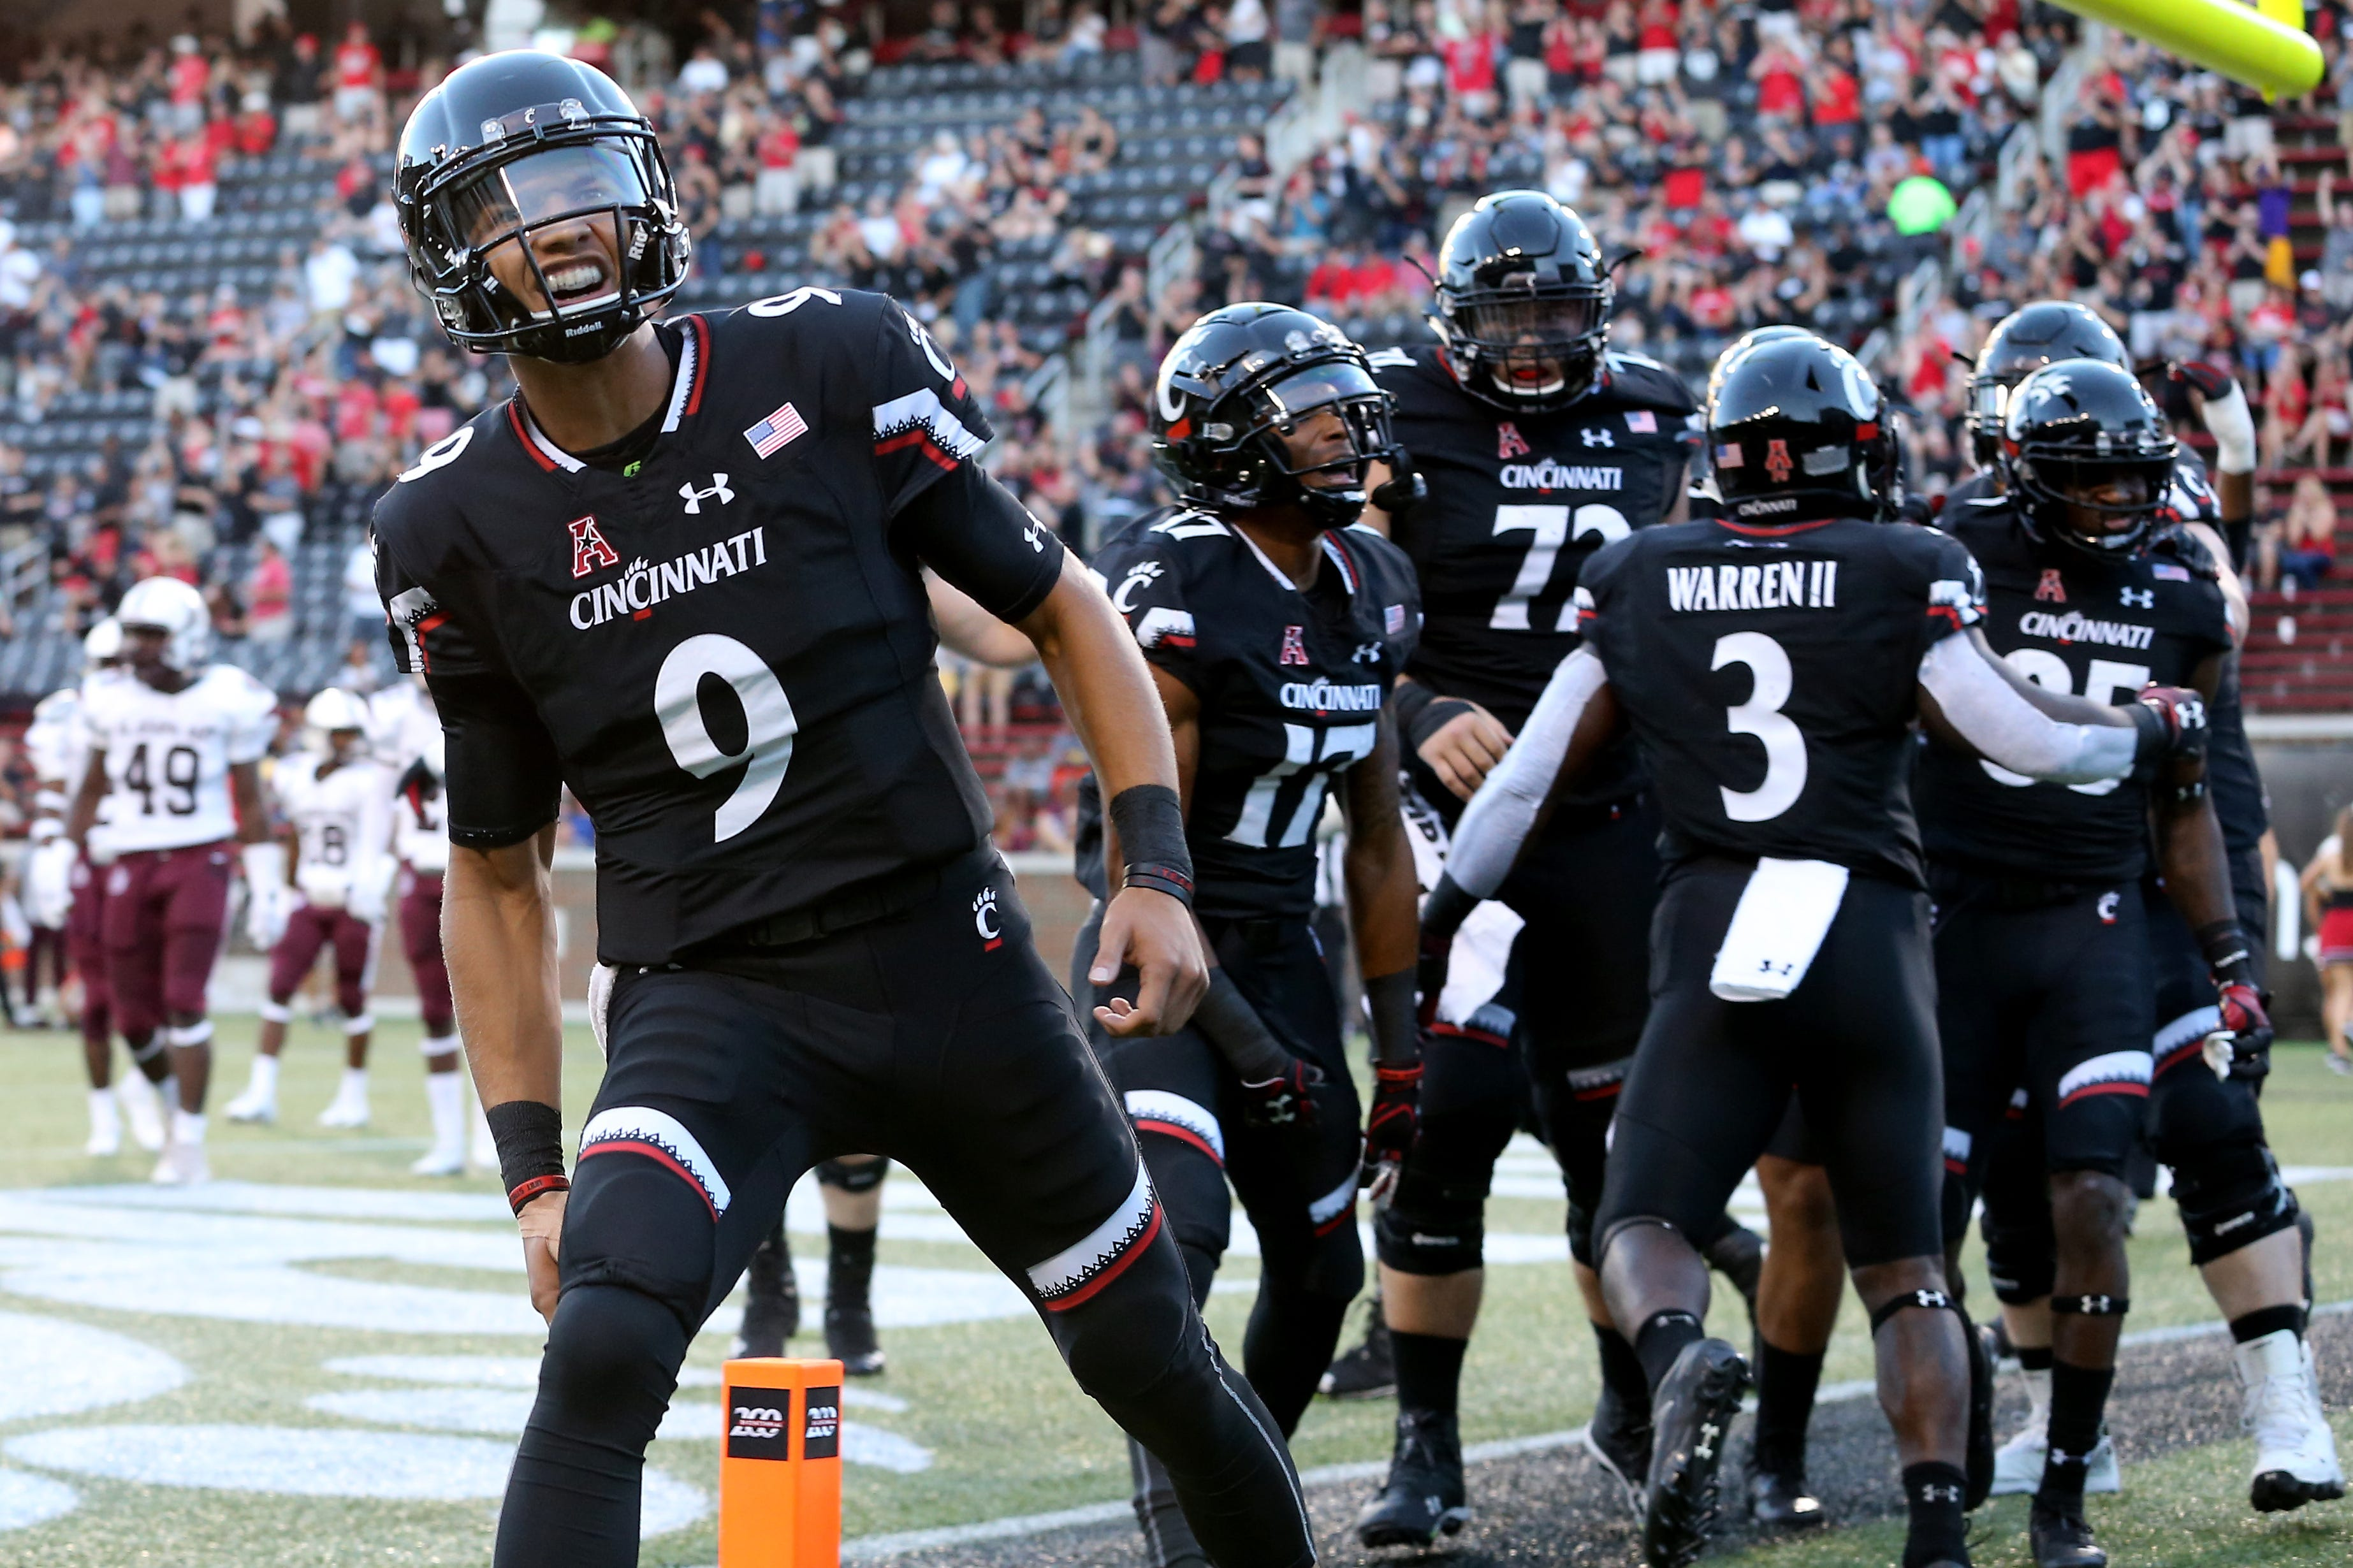 Uc Bearcats Football Team Moves Up In Weekly Aac Power Rankings